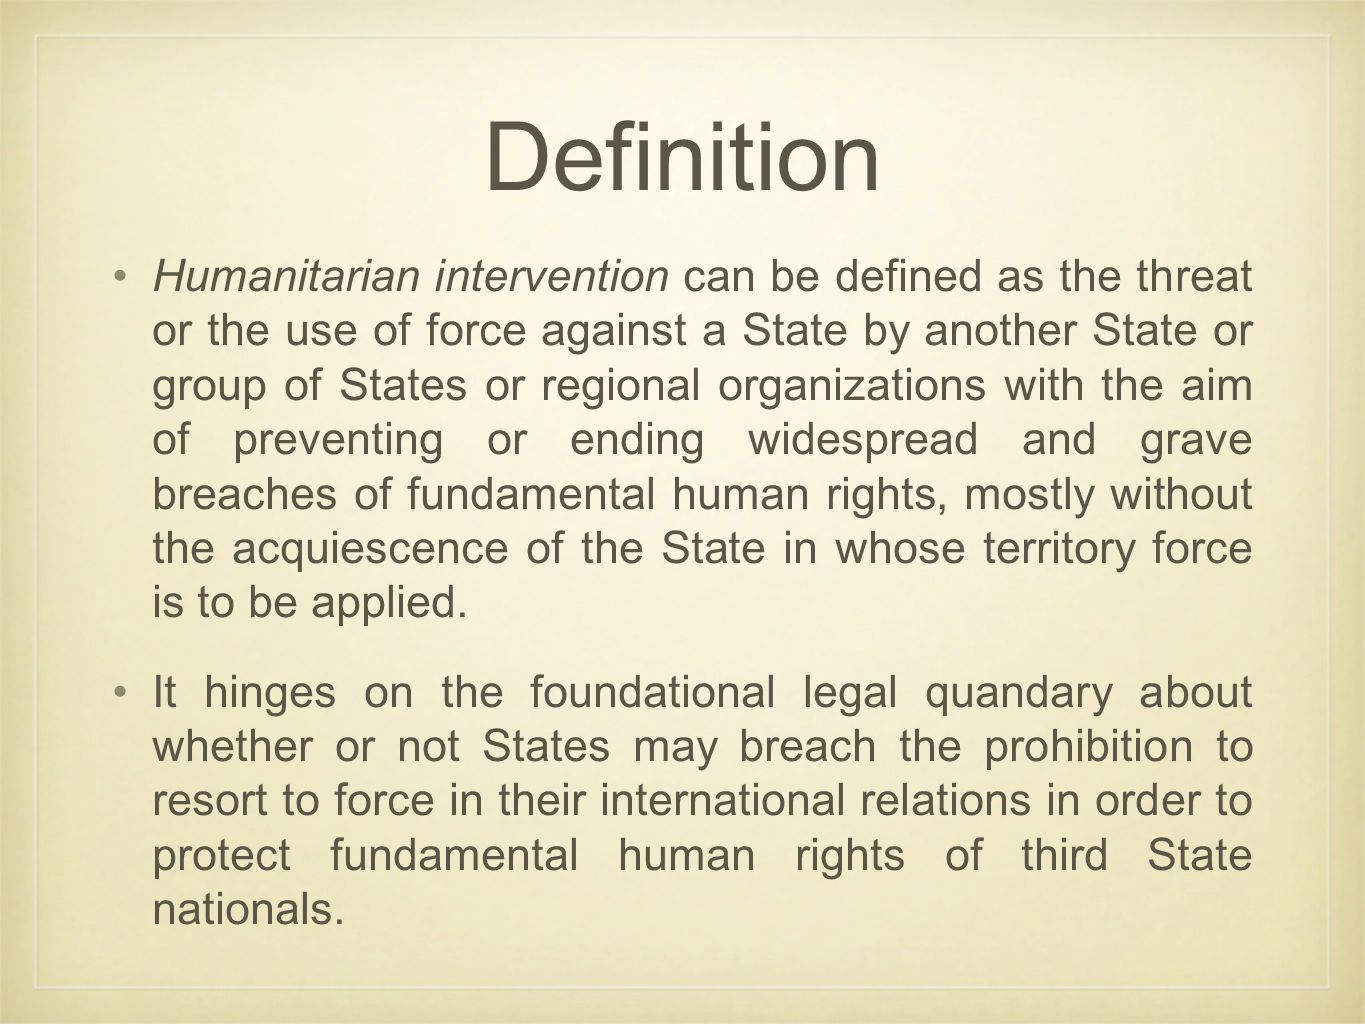 Definition Humanitarian intervention can be defined as the threat or the use of force against a State by another State or group of States or regional organizations with the aim of preventing or ending widespread and grave breaches of fundamental human rights, mostly without the acquiescence of the State in whose territory force is to be applied.